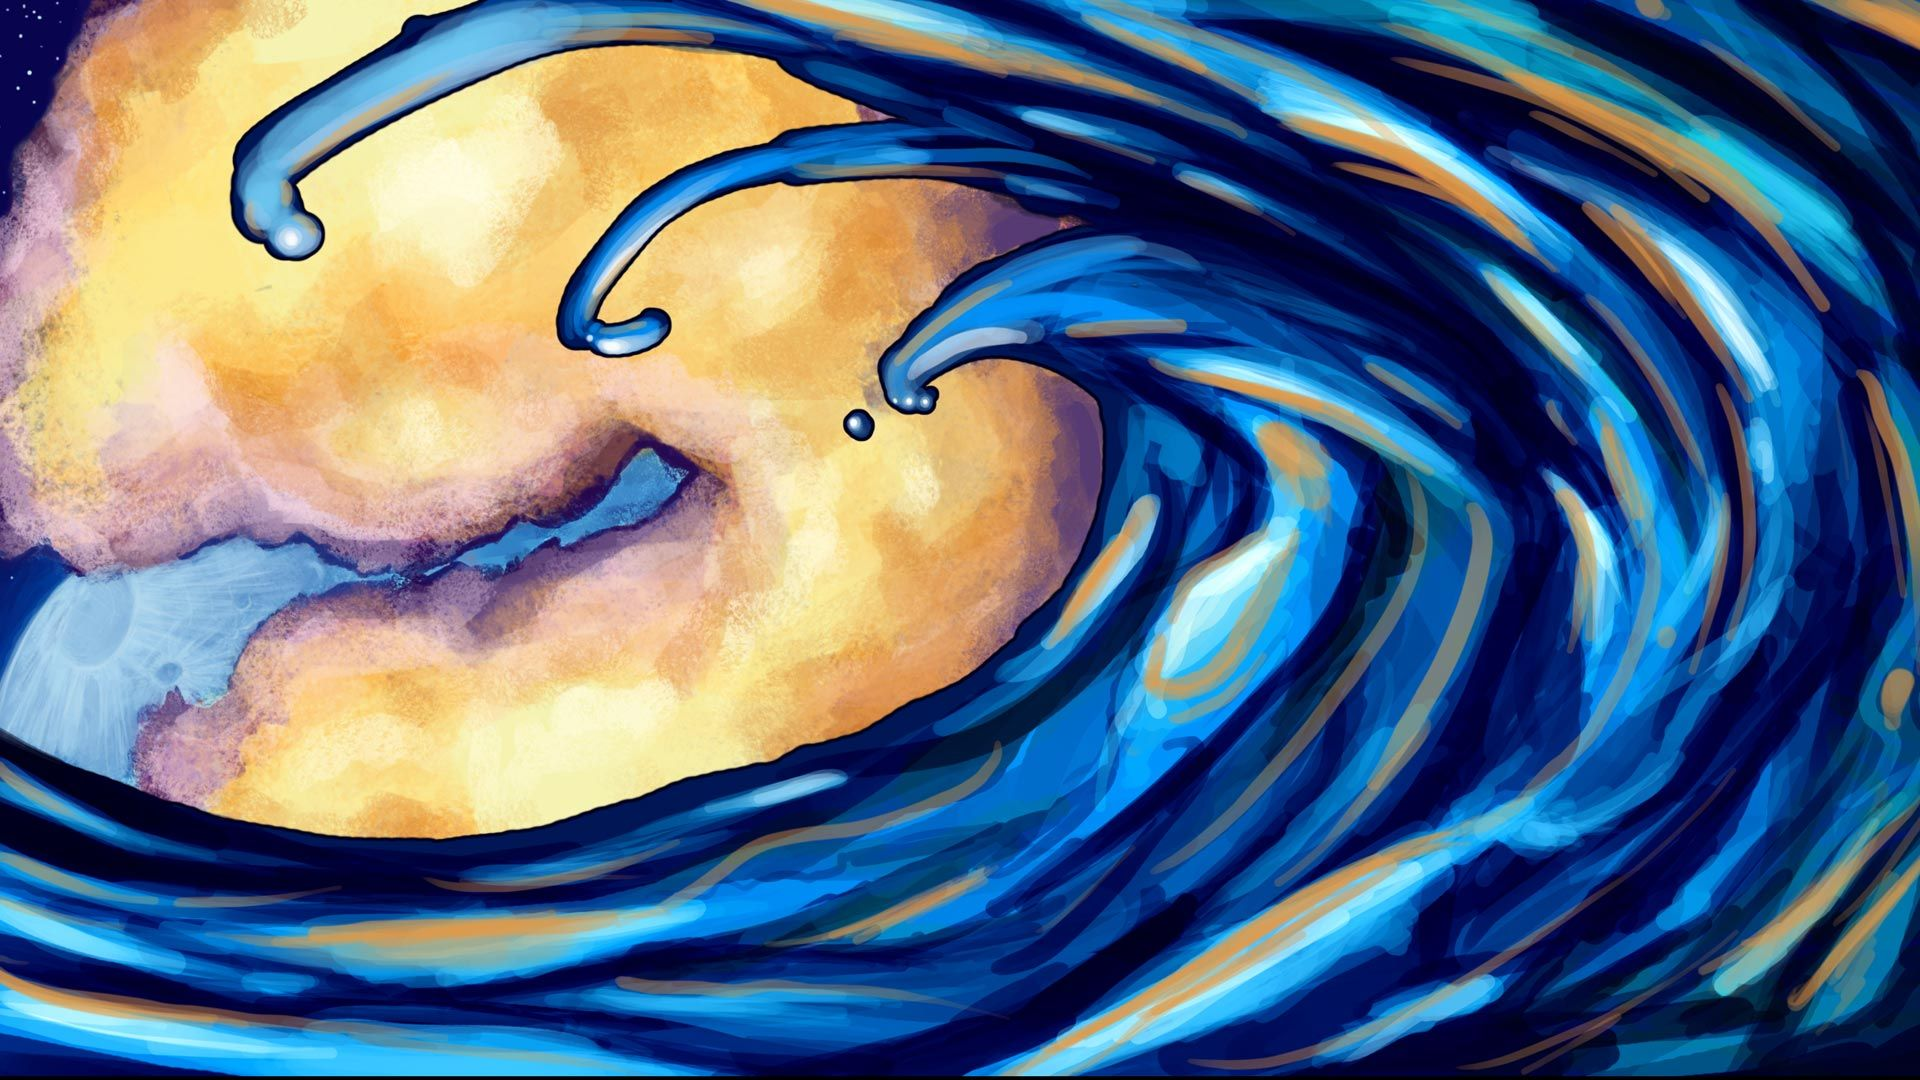 Images For > Blue Ocean Waves Drawing art waves